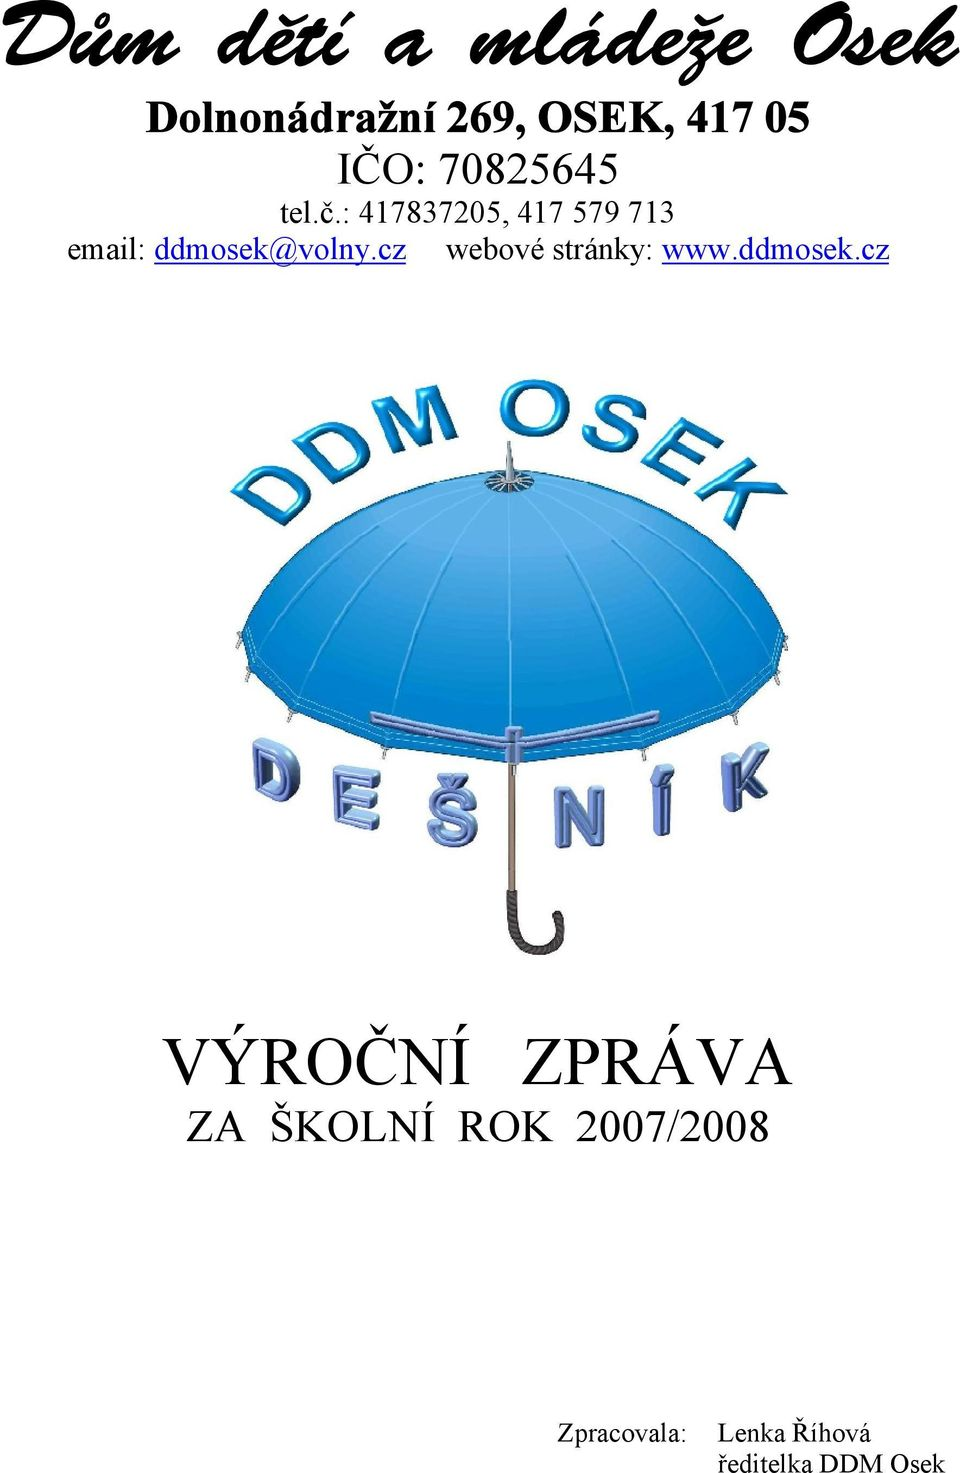 : 417837205, 417 579 713 email: ddmosek@volny.